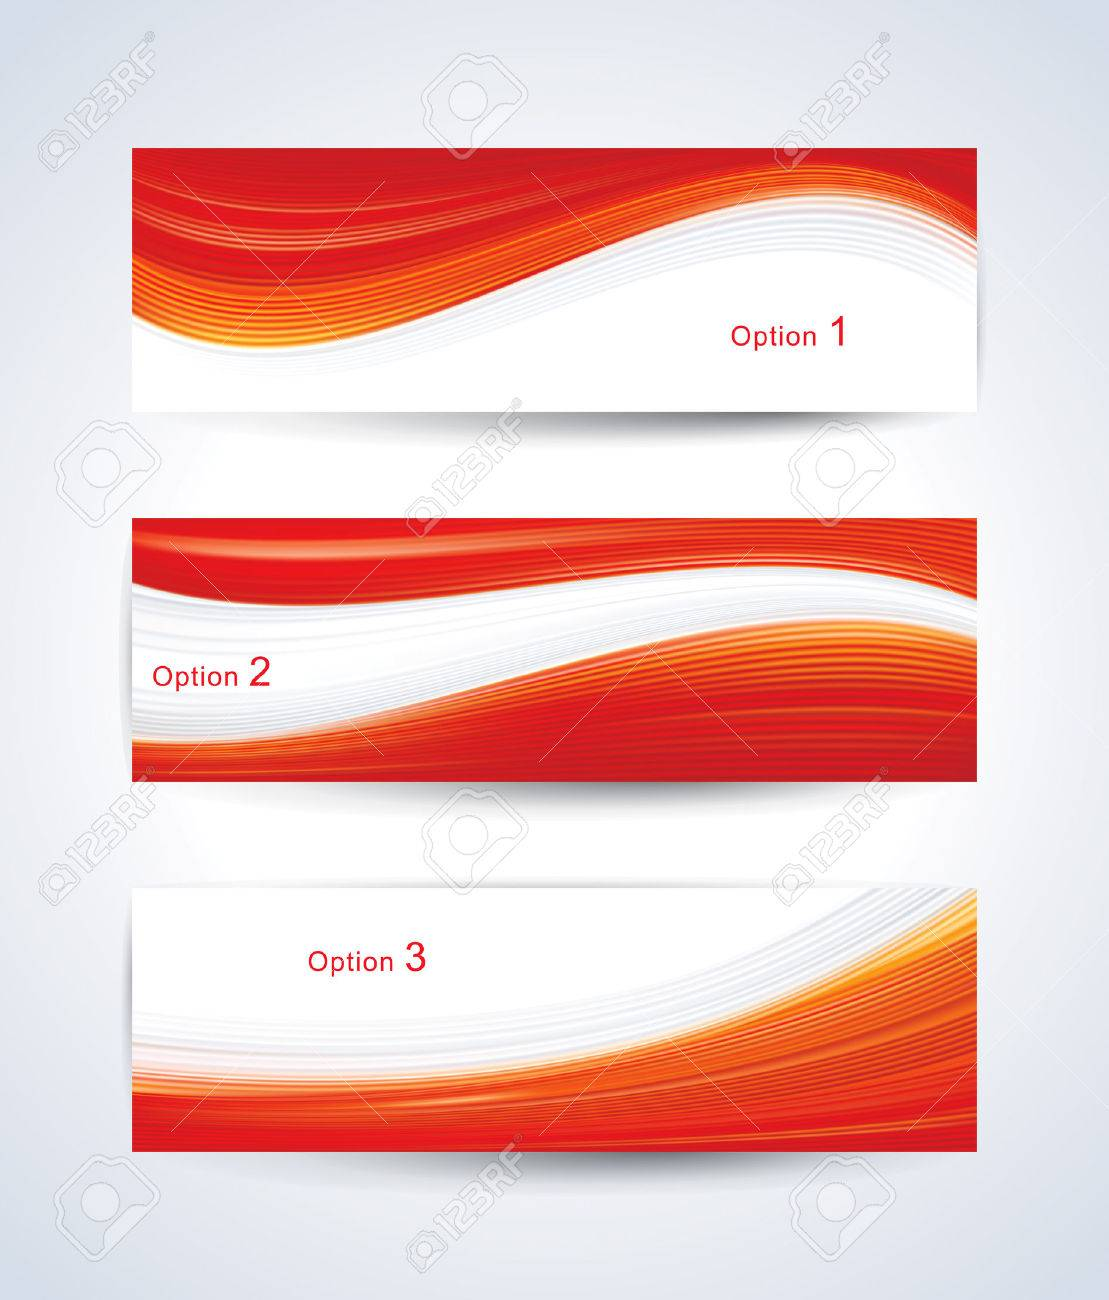 Website banner set with red wave pattern. - 50507397